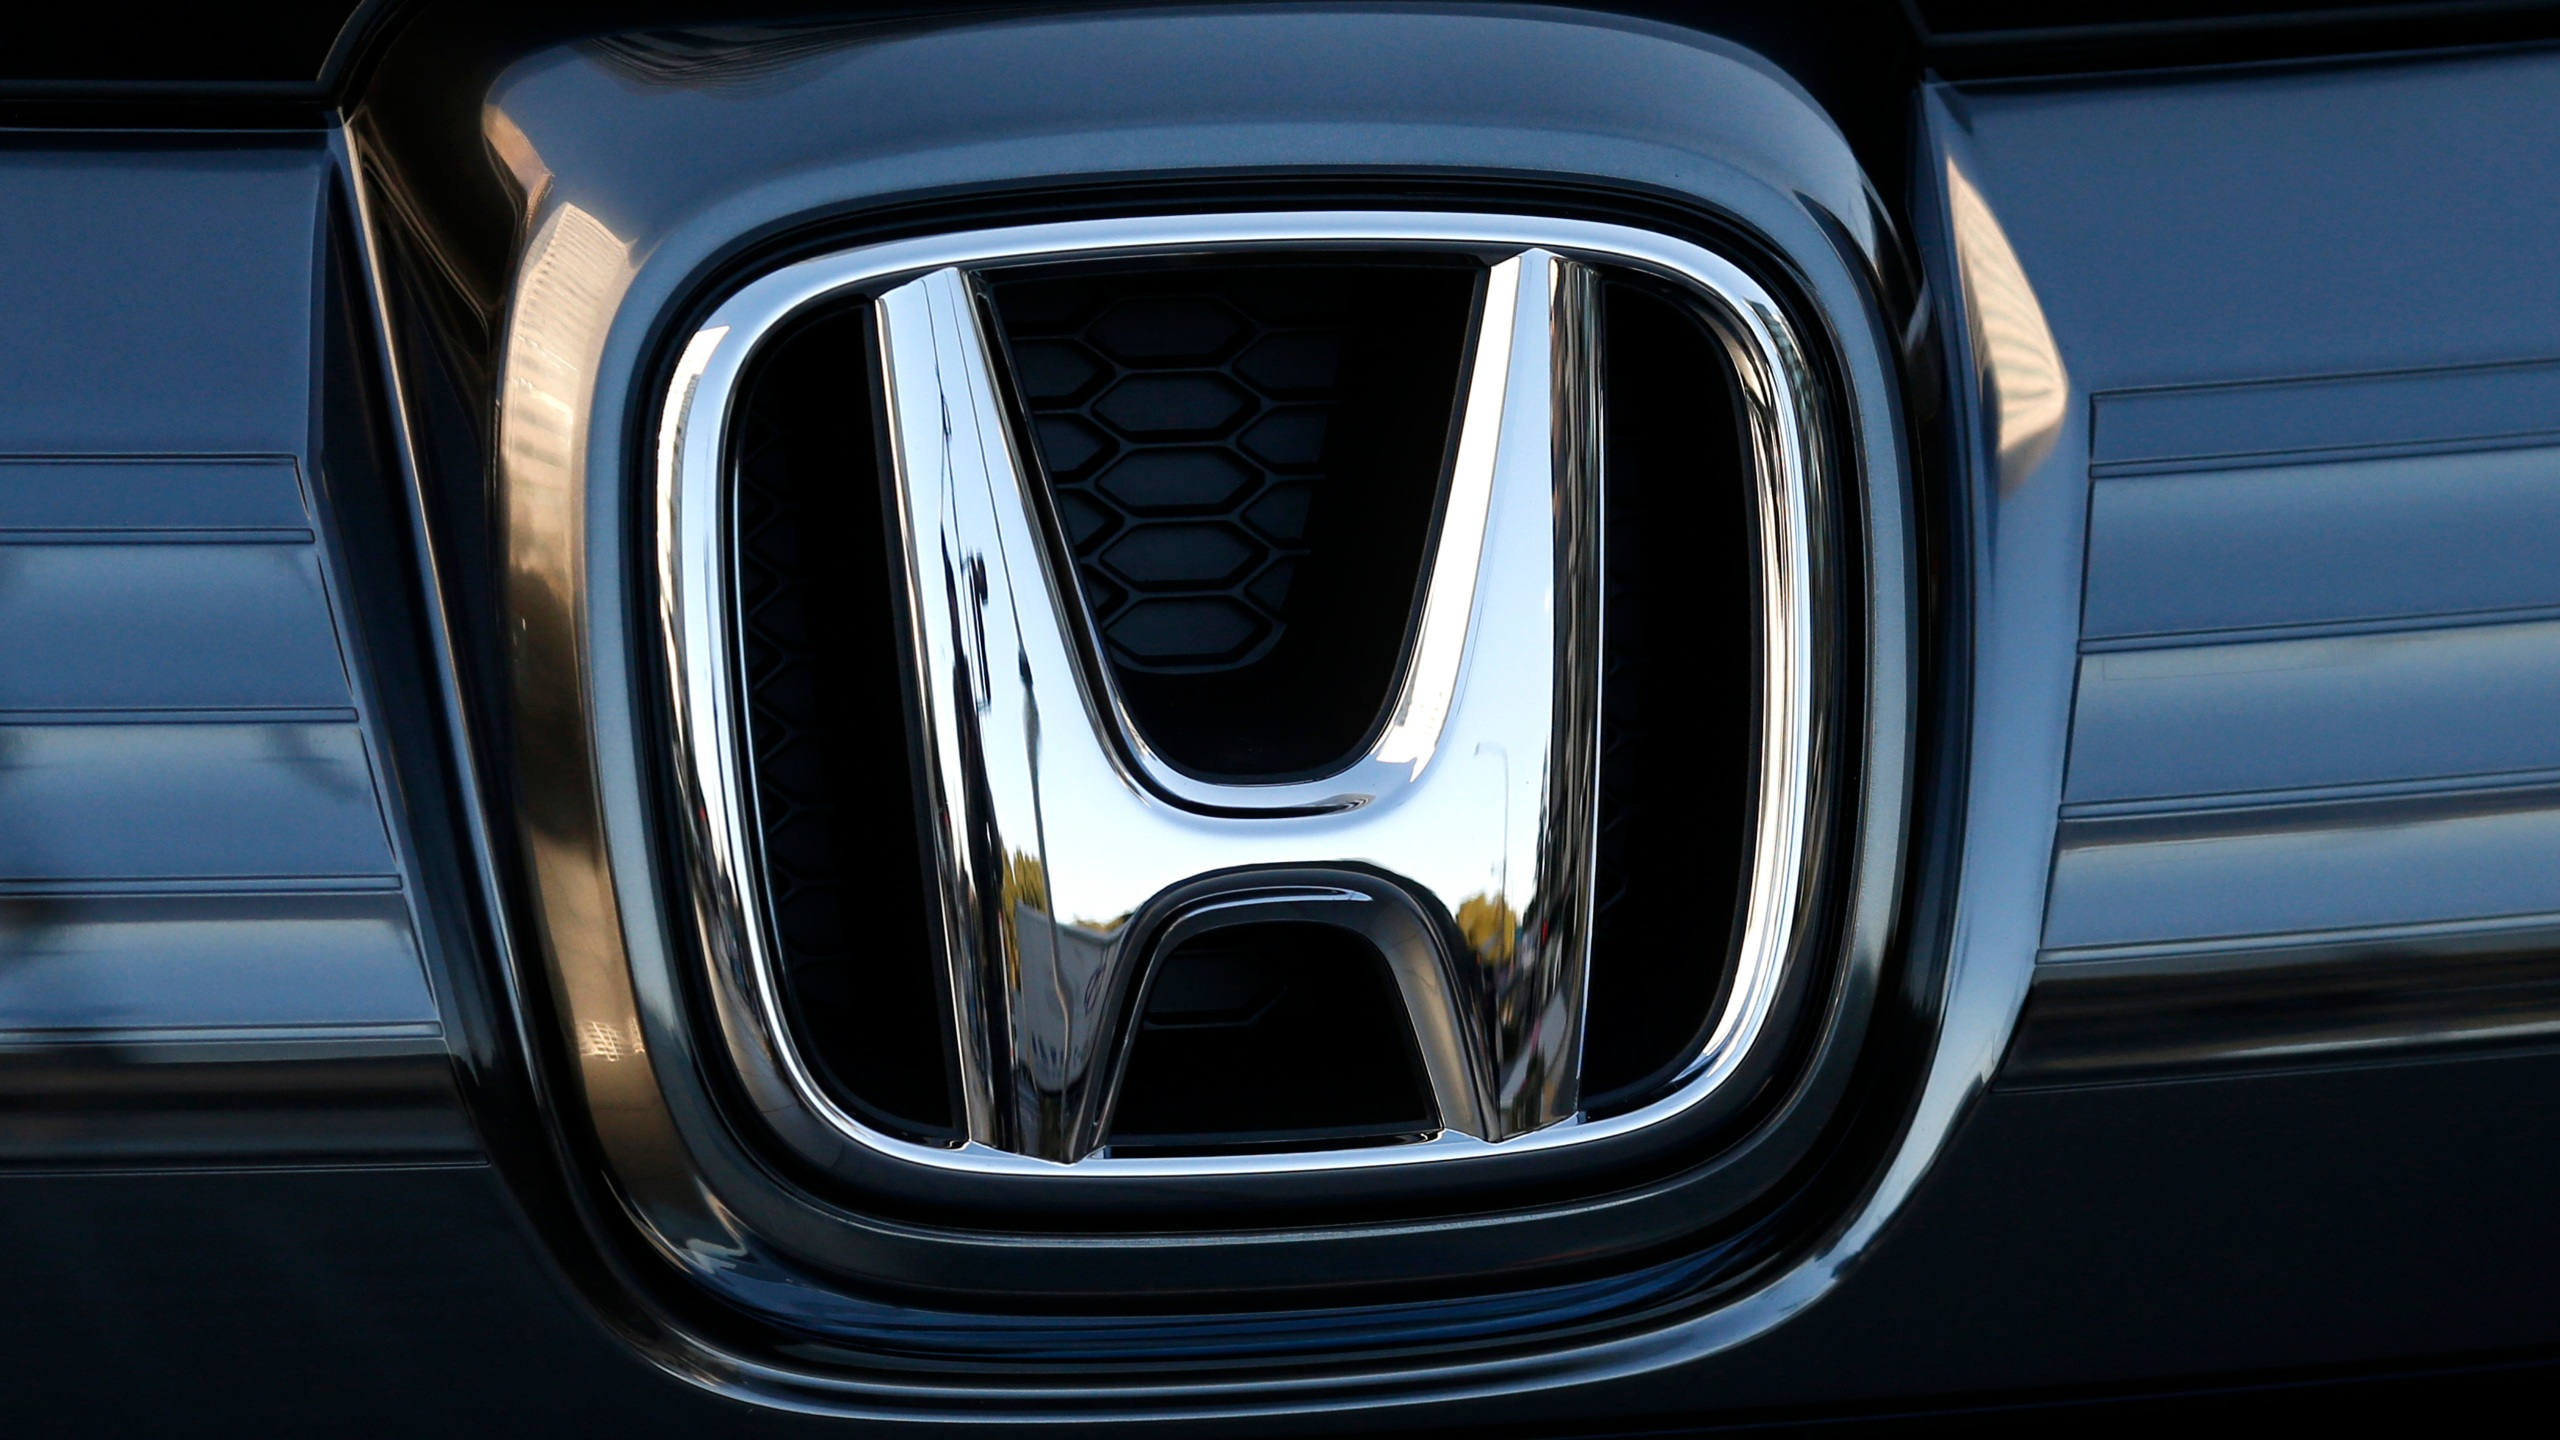 Japan_Earns_Honda_11373-159532.jpg83099419